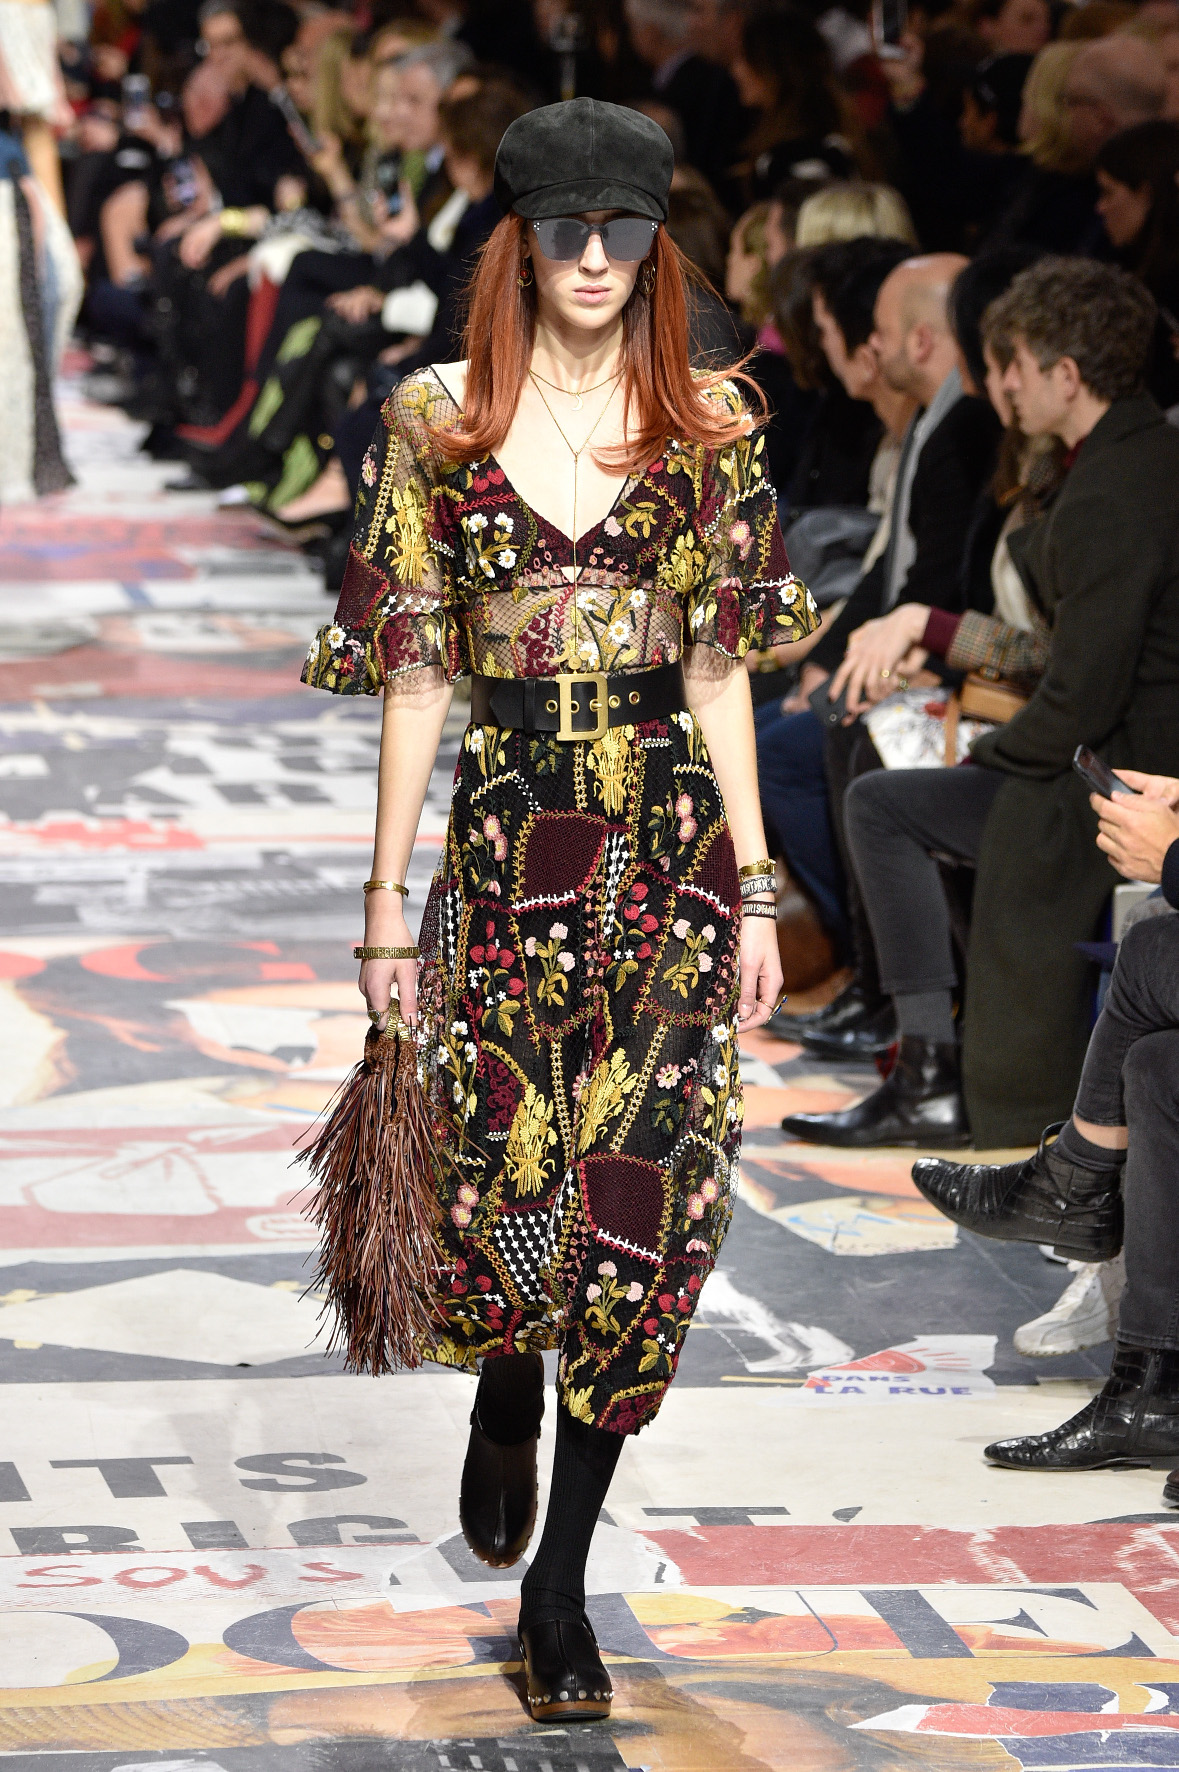 PARIS, FRANCE - FEBRUARY 27:  Teddy Quinlivan walks the runway during the Christian Dior show as part of the Paris Fashion Week Womenswear Fall/Winter 2018/2019 on February 27, 2018 in Paris, France.  (Photo by Peter White/Getty Images)